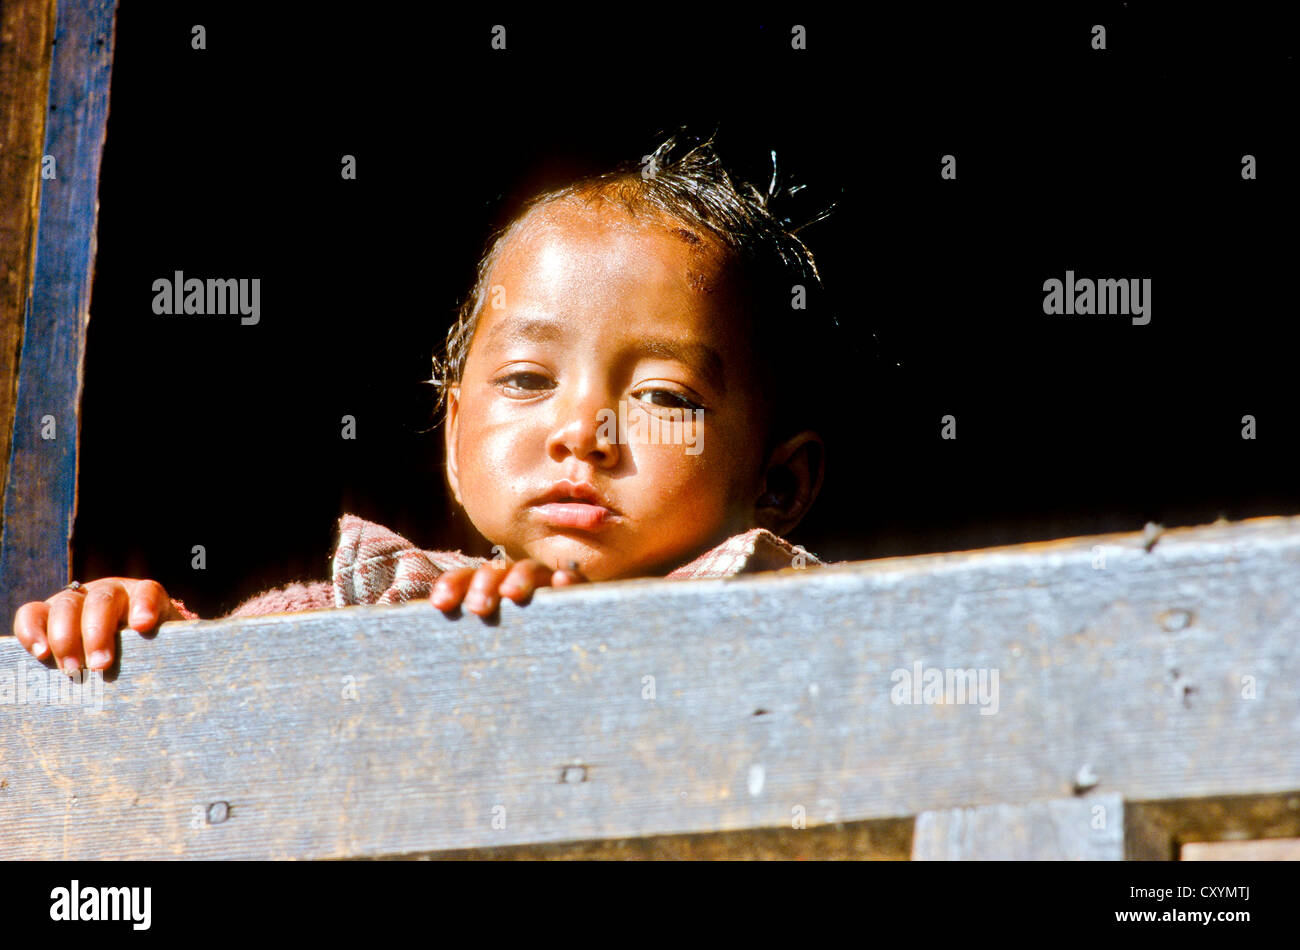 Little boy curiously looking out of a window in the small village of Gangi, India, Asia - Stock Image